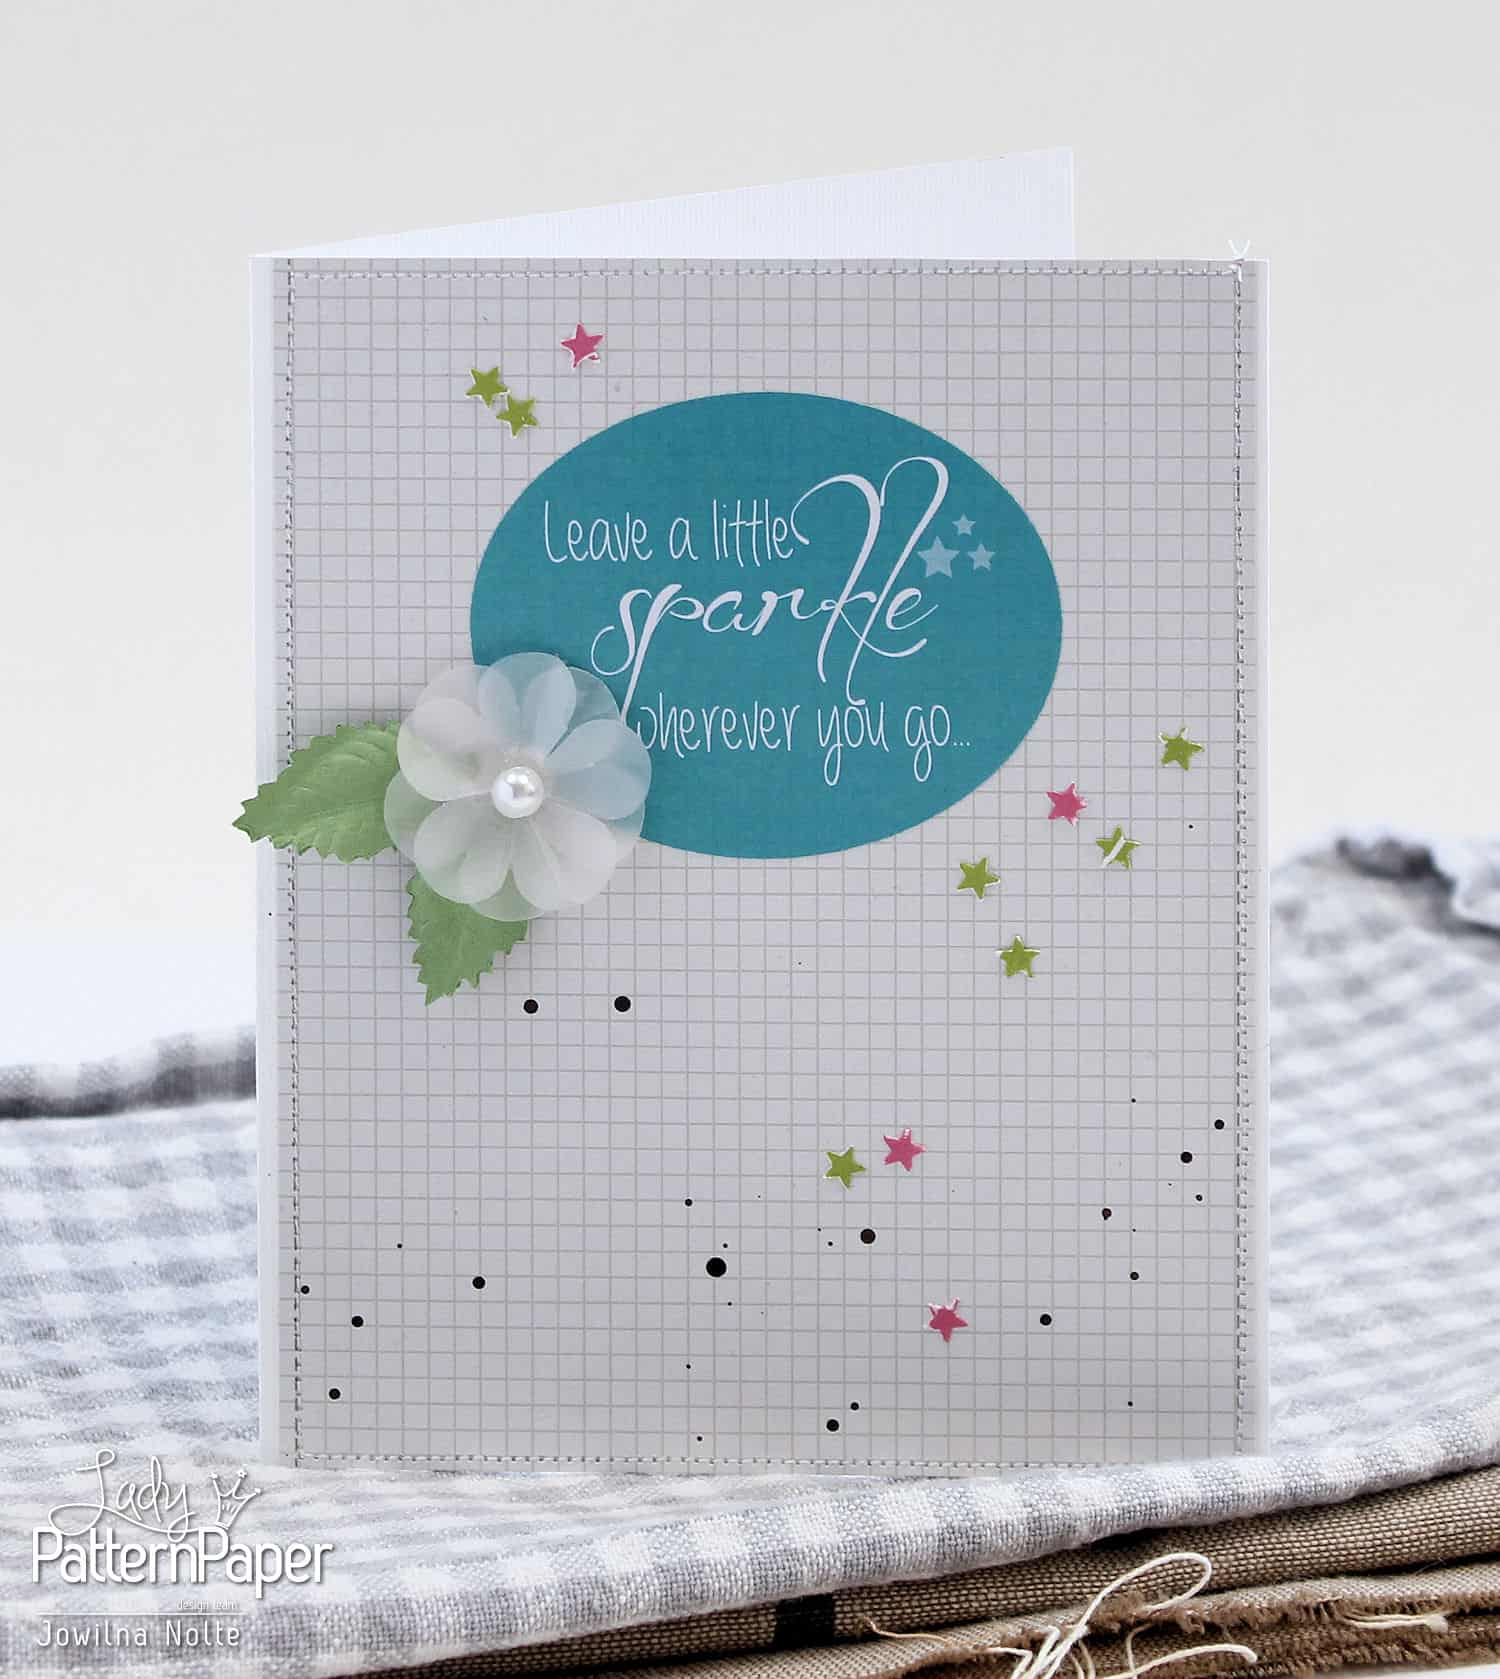 Sticker Sentiment Cards - Leave A Little Sparkle